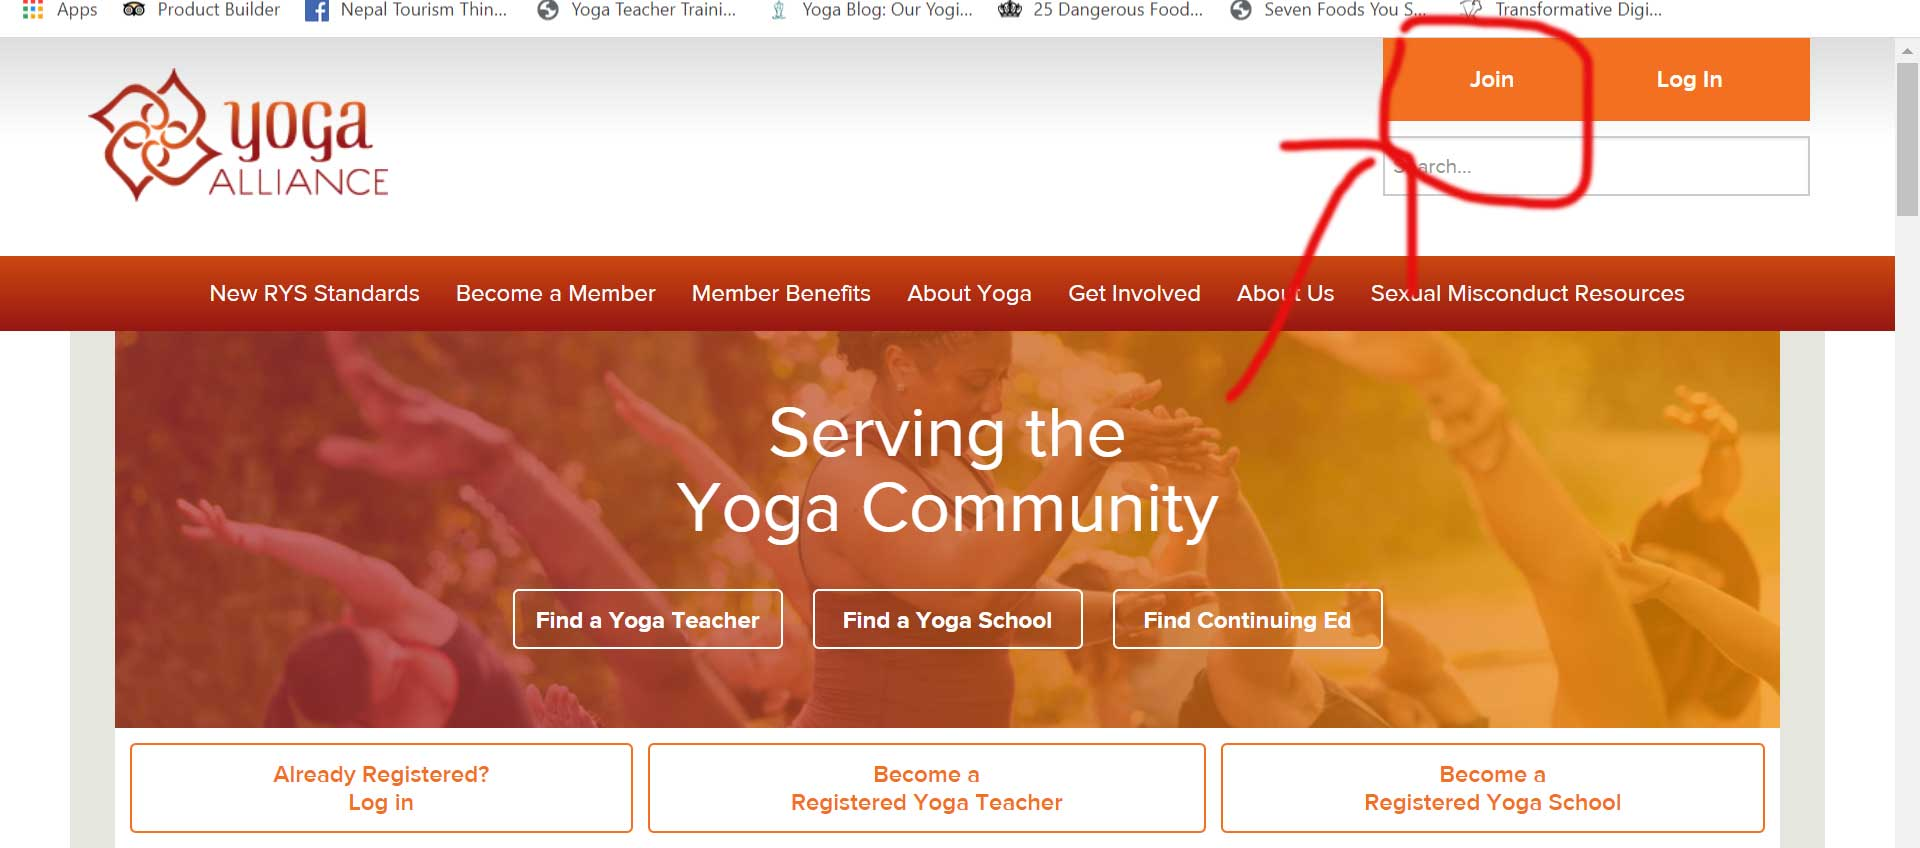 How to Register with Yoga Alliance After Graduation